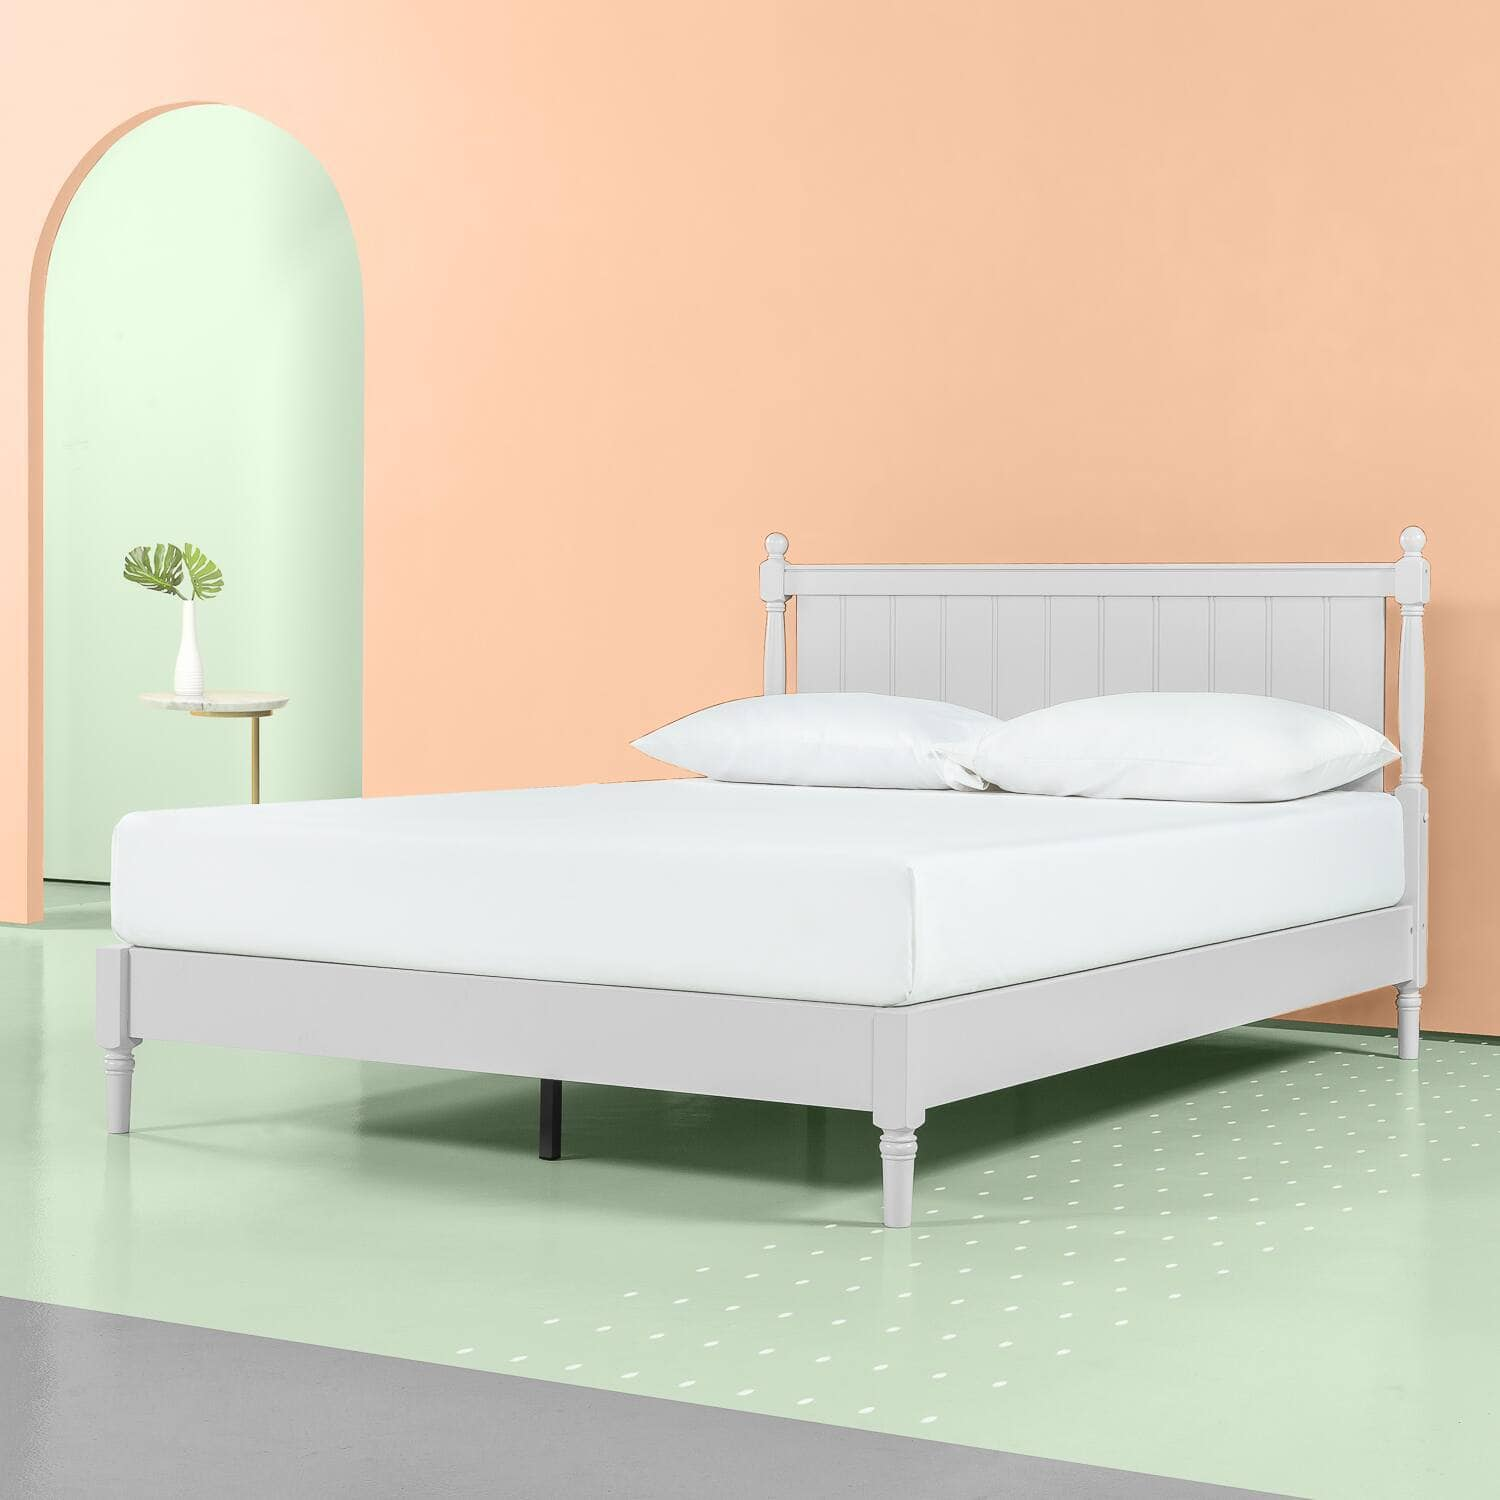 ZINUS Provence Wood Platform Bed with Panel Headboard, Pale Grey from $156.24 + Free S/H